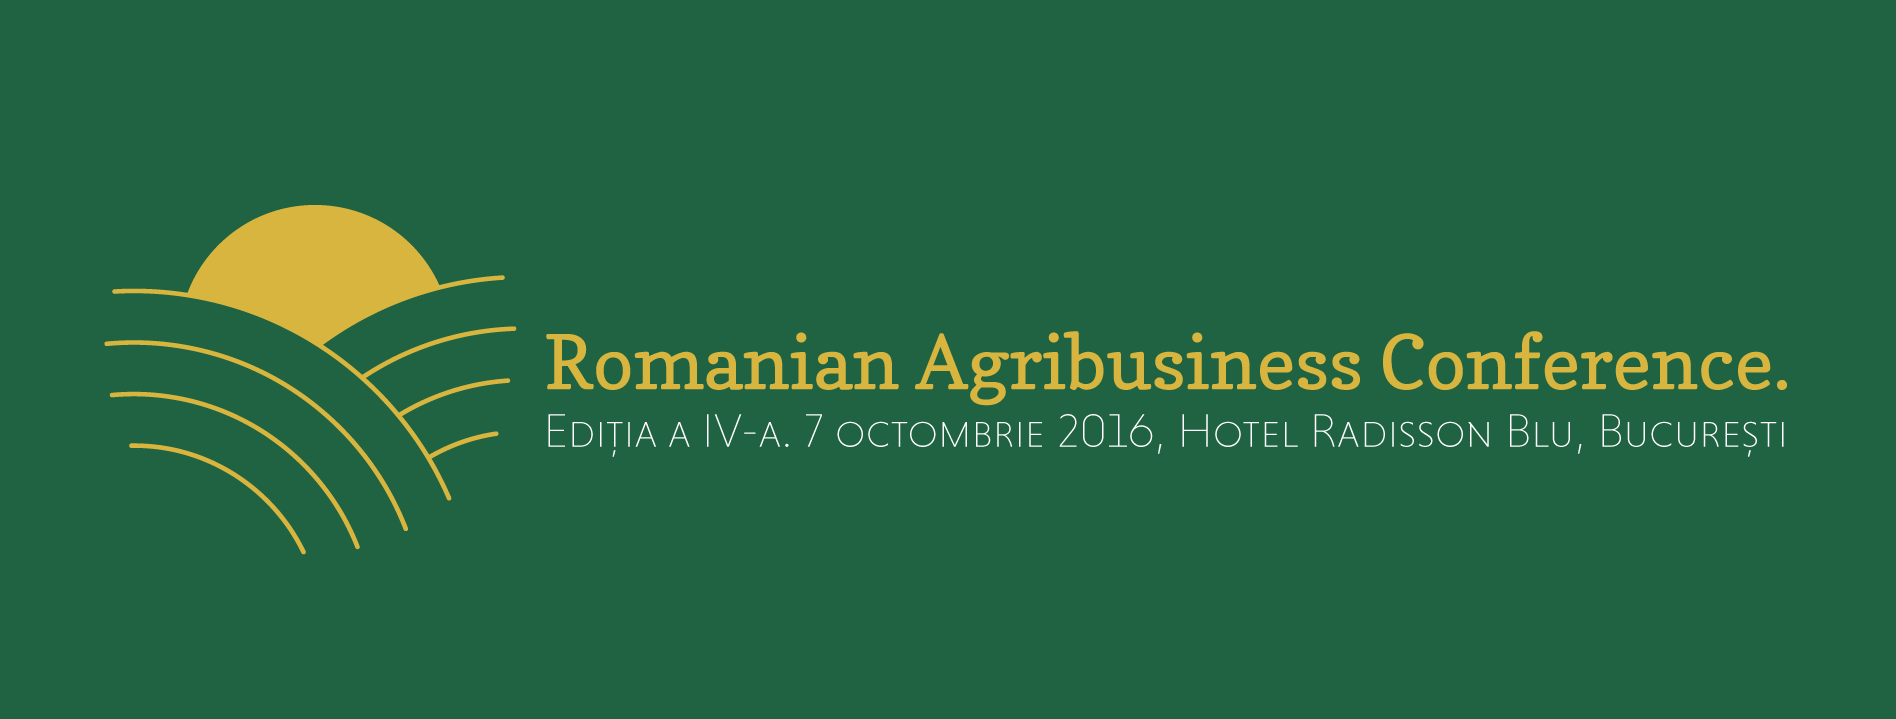 Romanian Agribusiness Conference. Ediția a IV-a